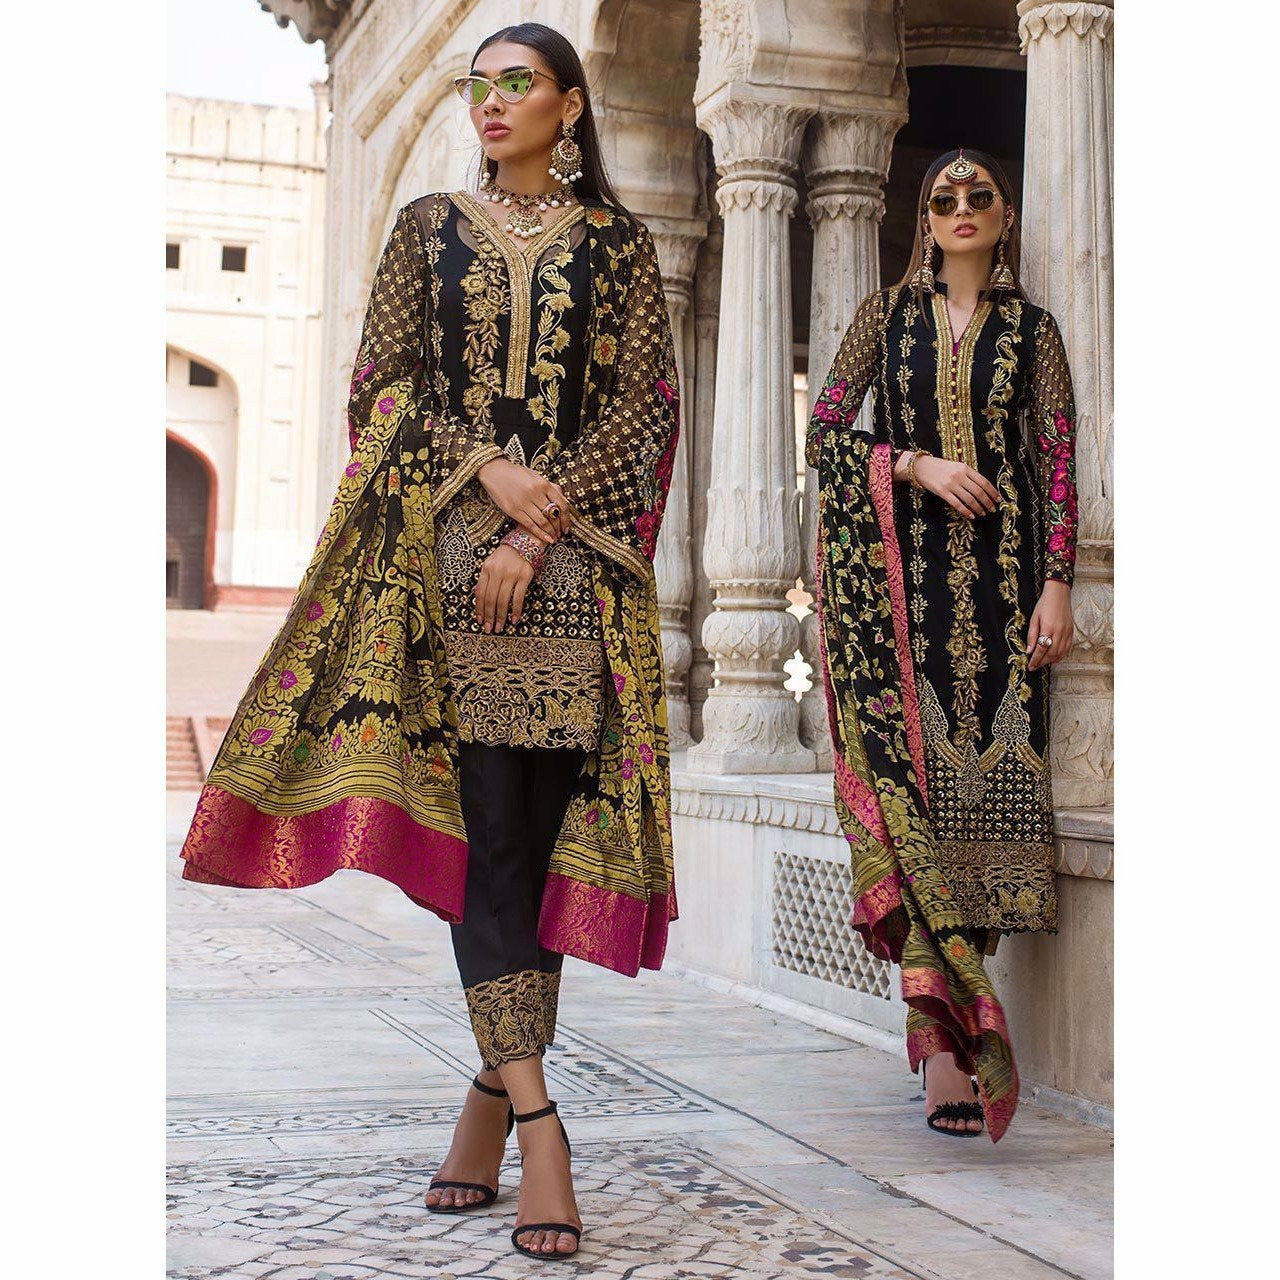 Pakistani Designer Dresses for Wedding, wedding dresses for girls